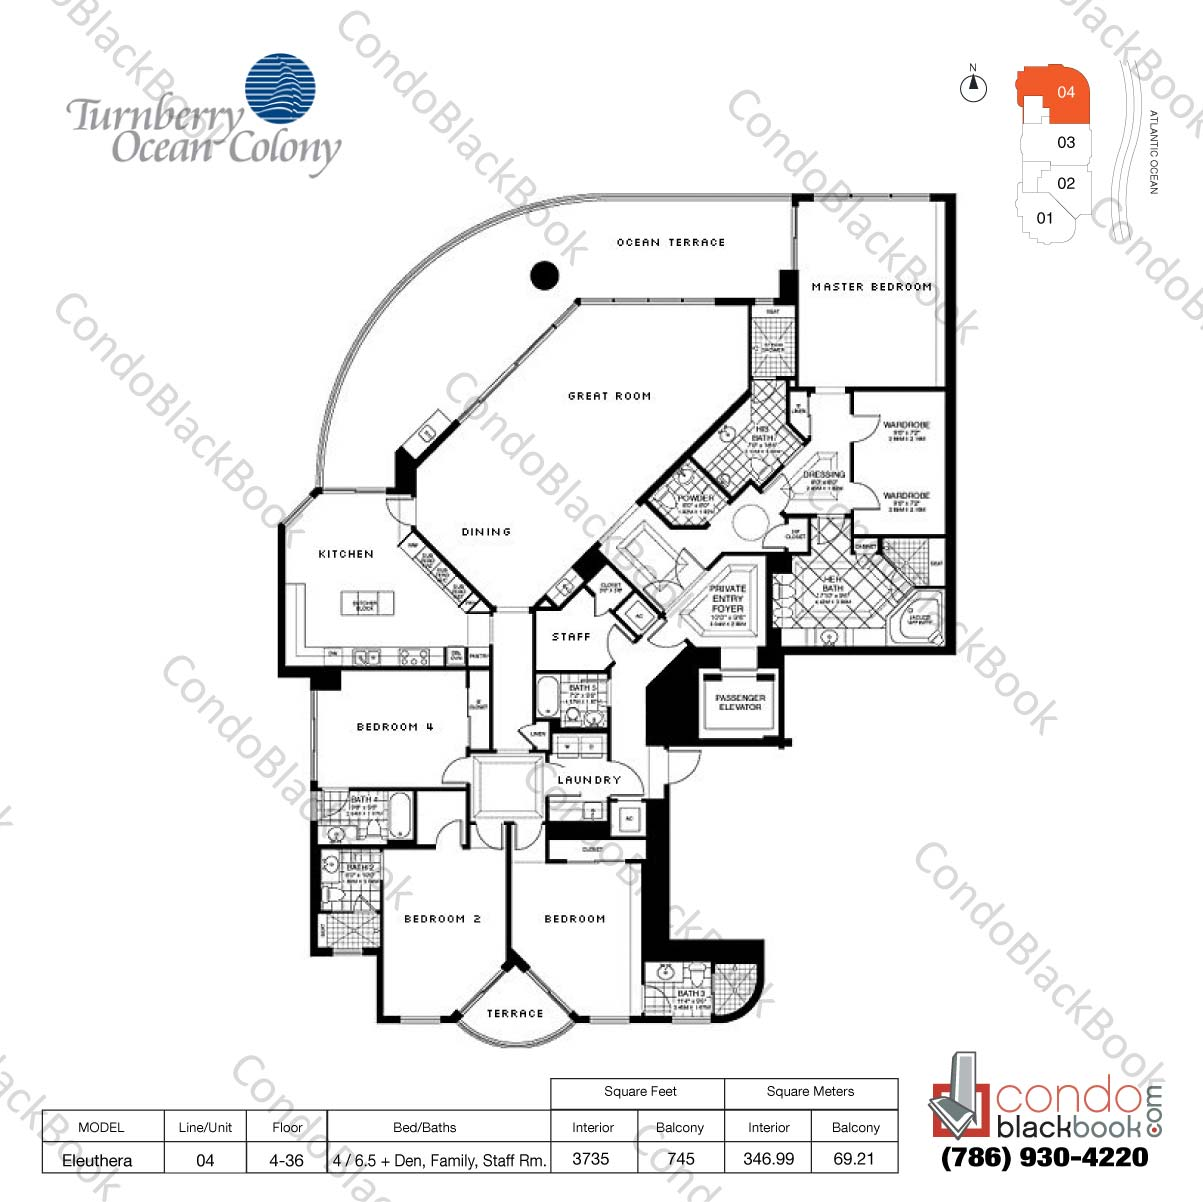 Floor plan for Turnberry Ocean Colony Sunny Isles Beach, model Eleuthera, line 04, 4 / 6.5+ Den, Family Rm., Staff Rm. bedrooms, 3735 sq ft